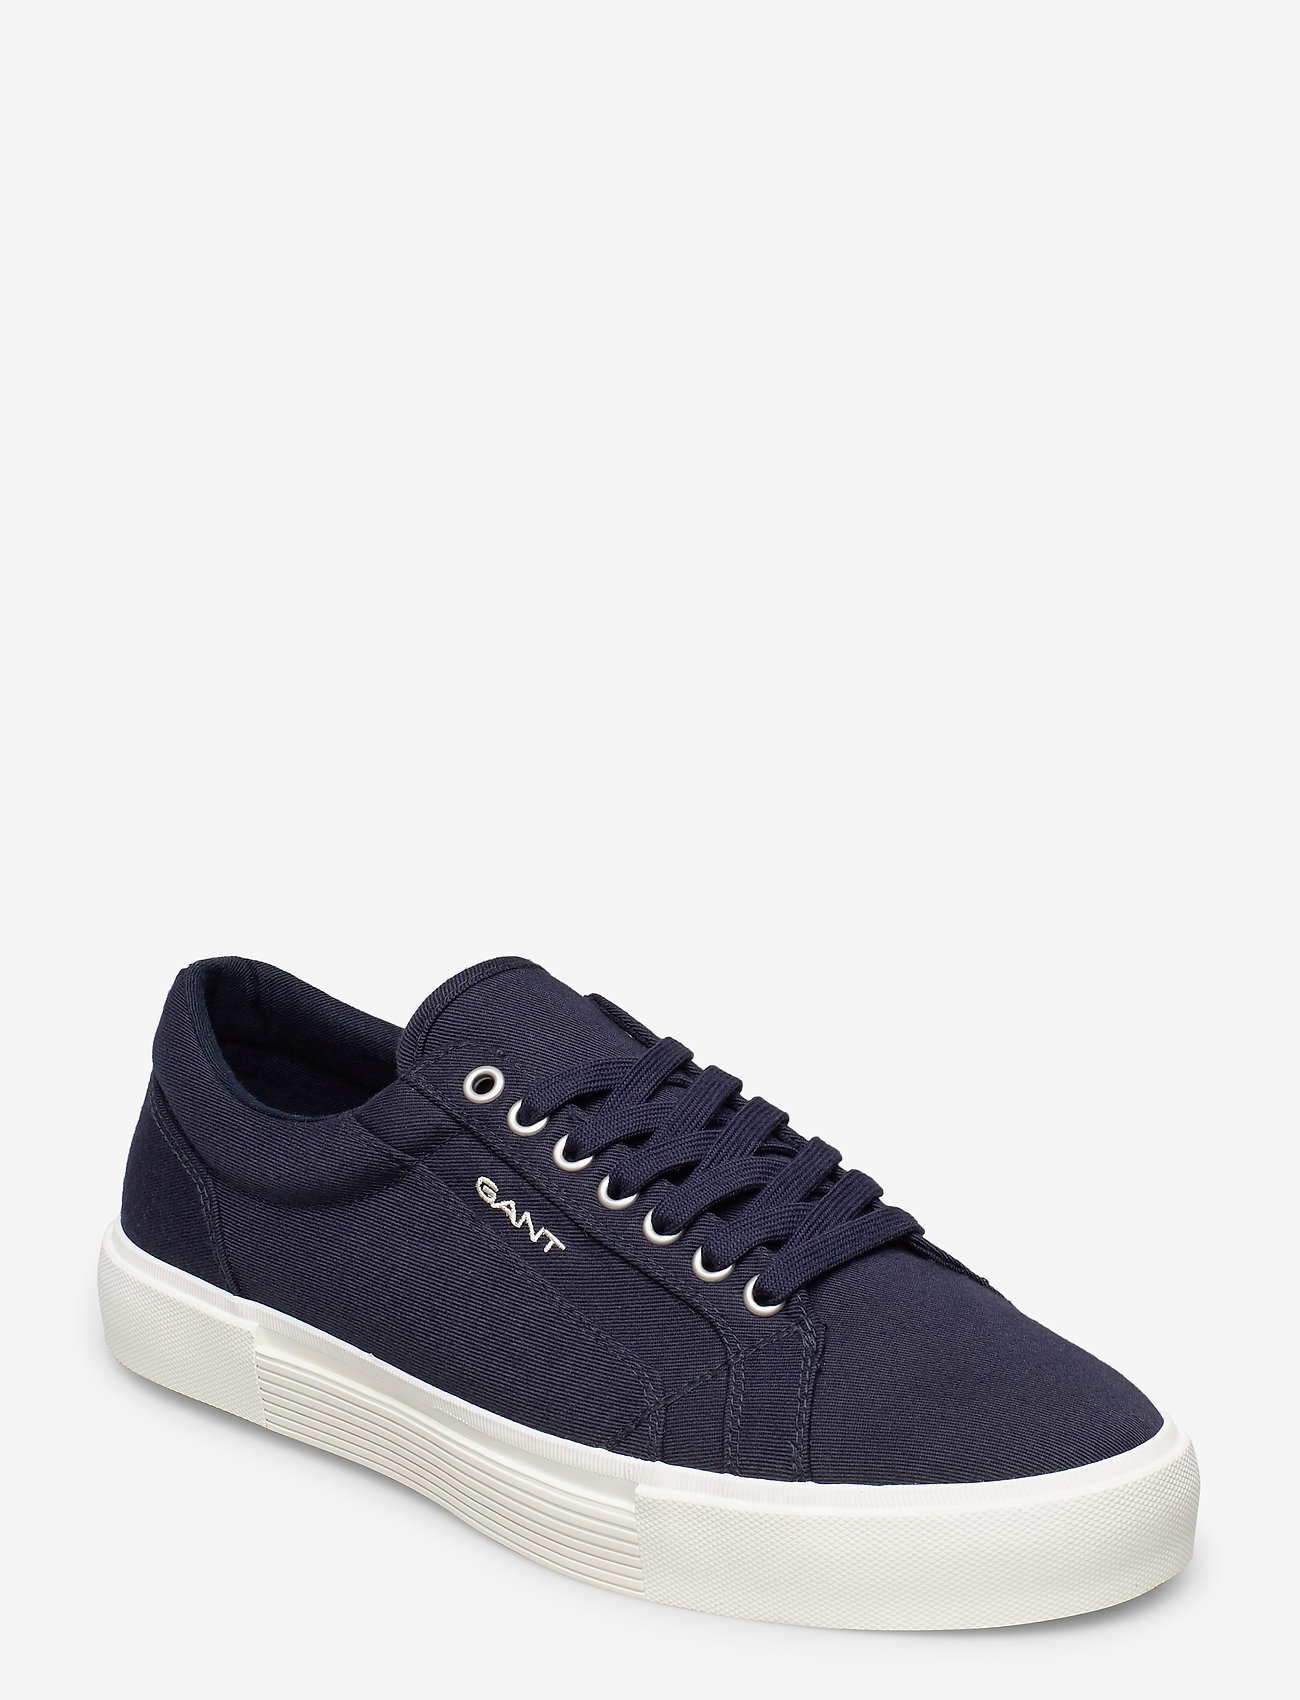 GANT - Champroyal Low laceshoes - low tops - marine - 0